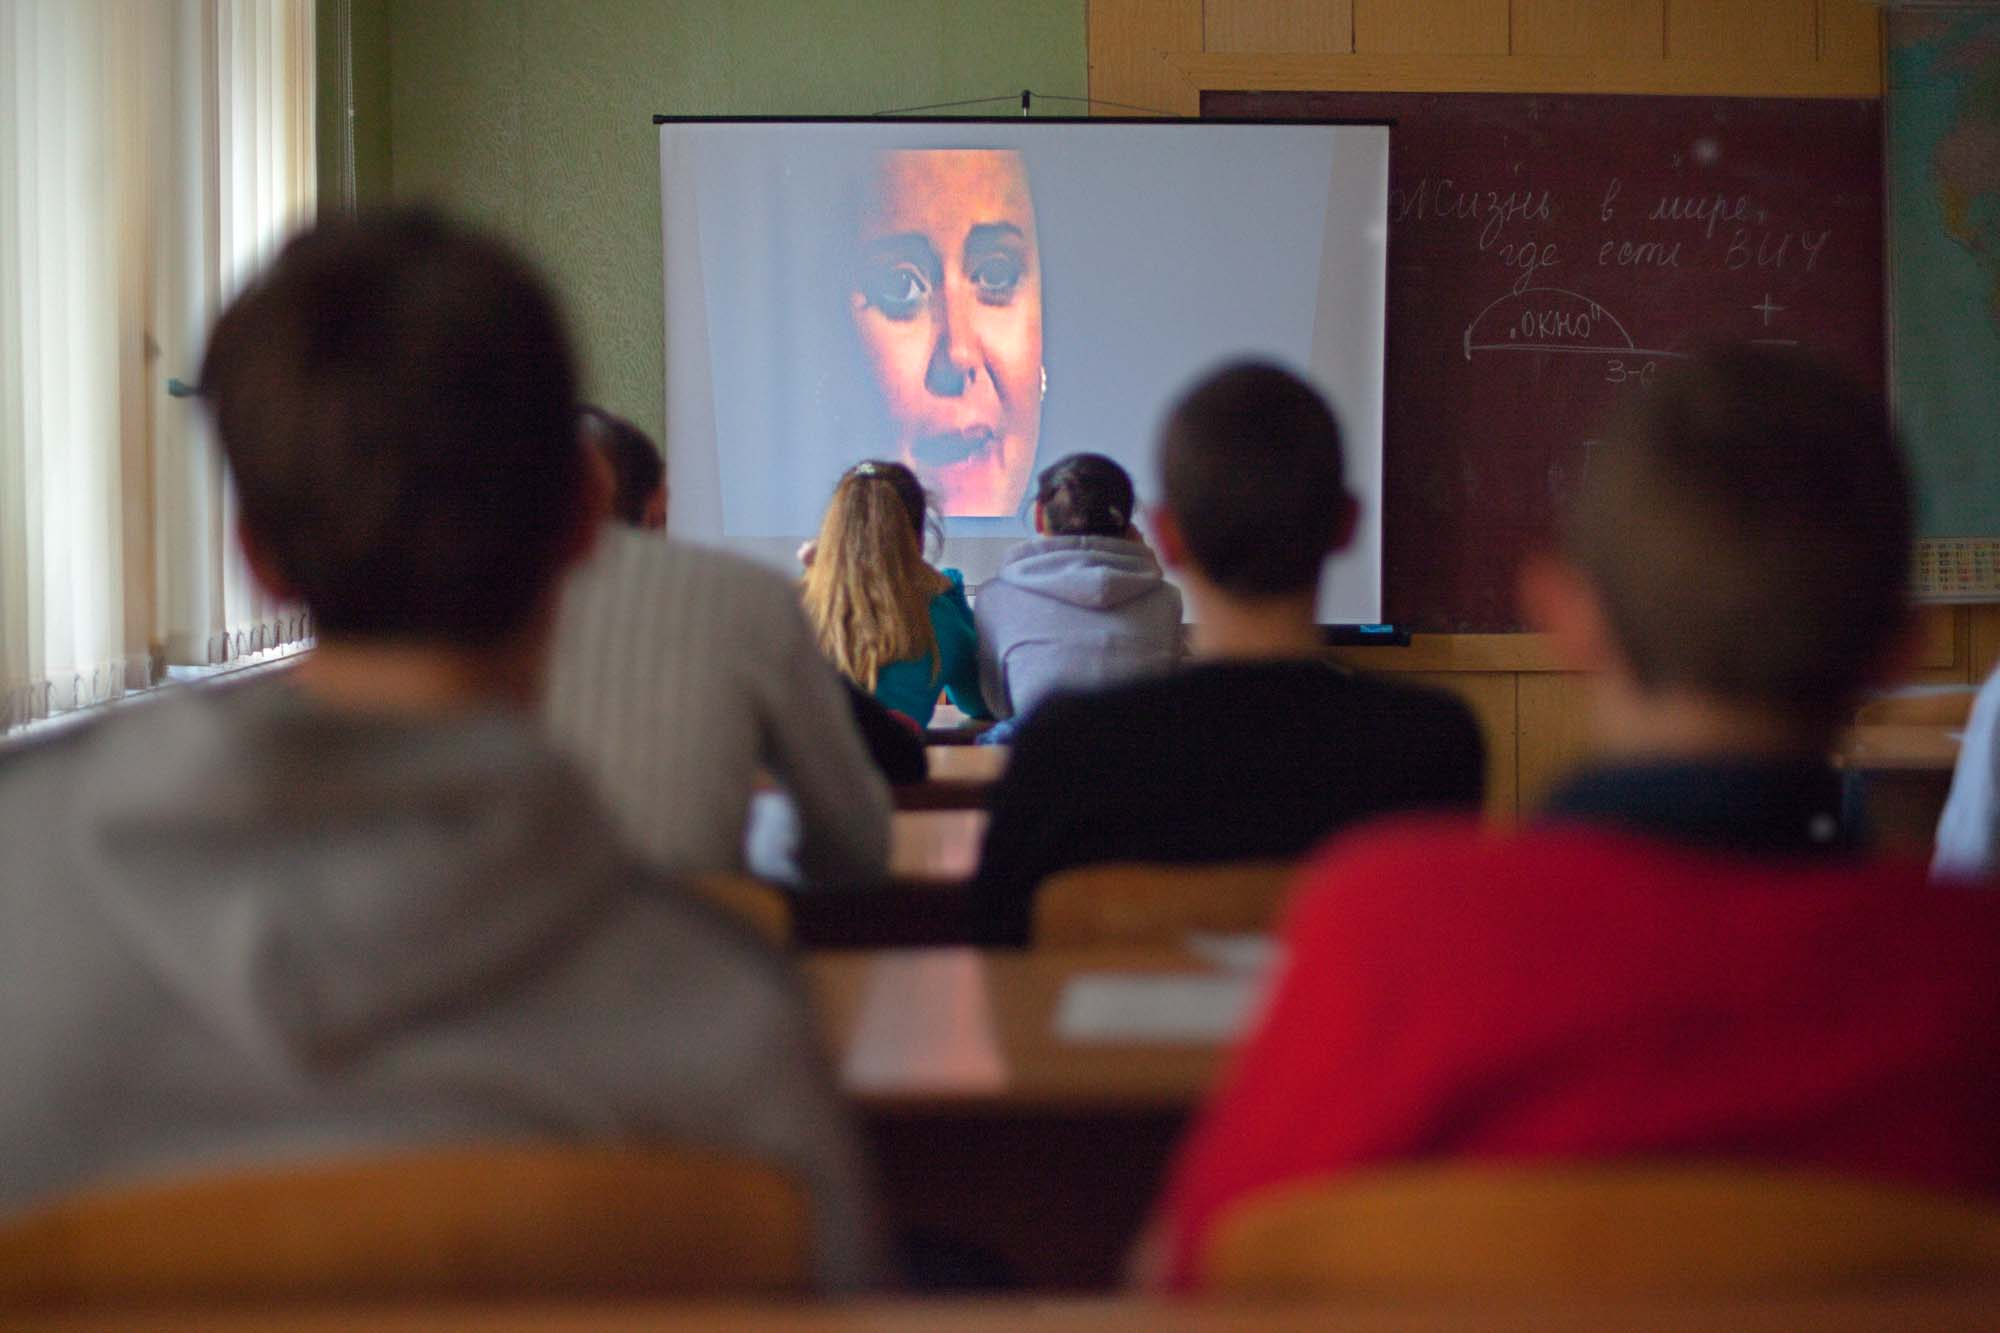 Classroom with students watching a film